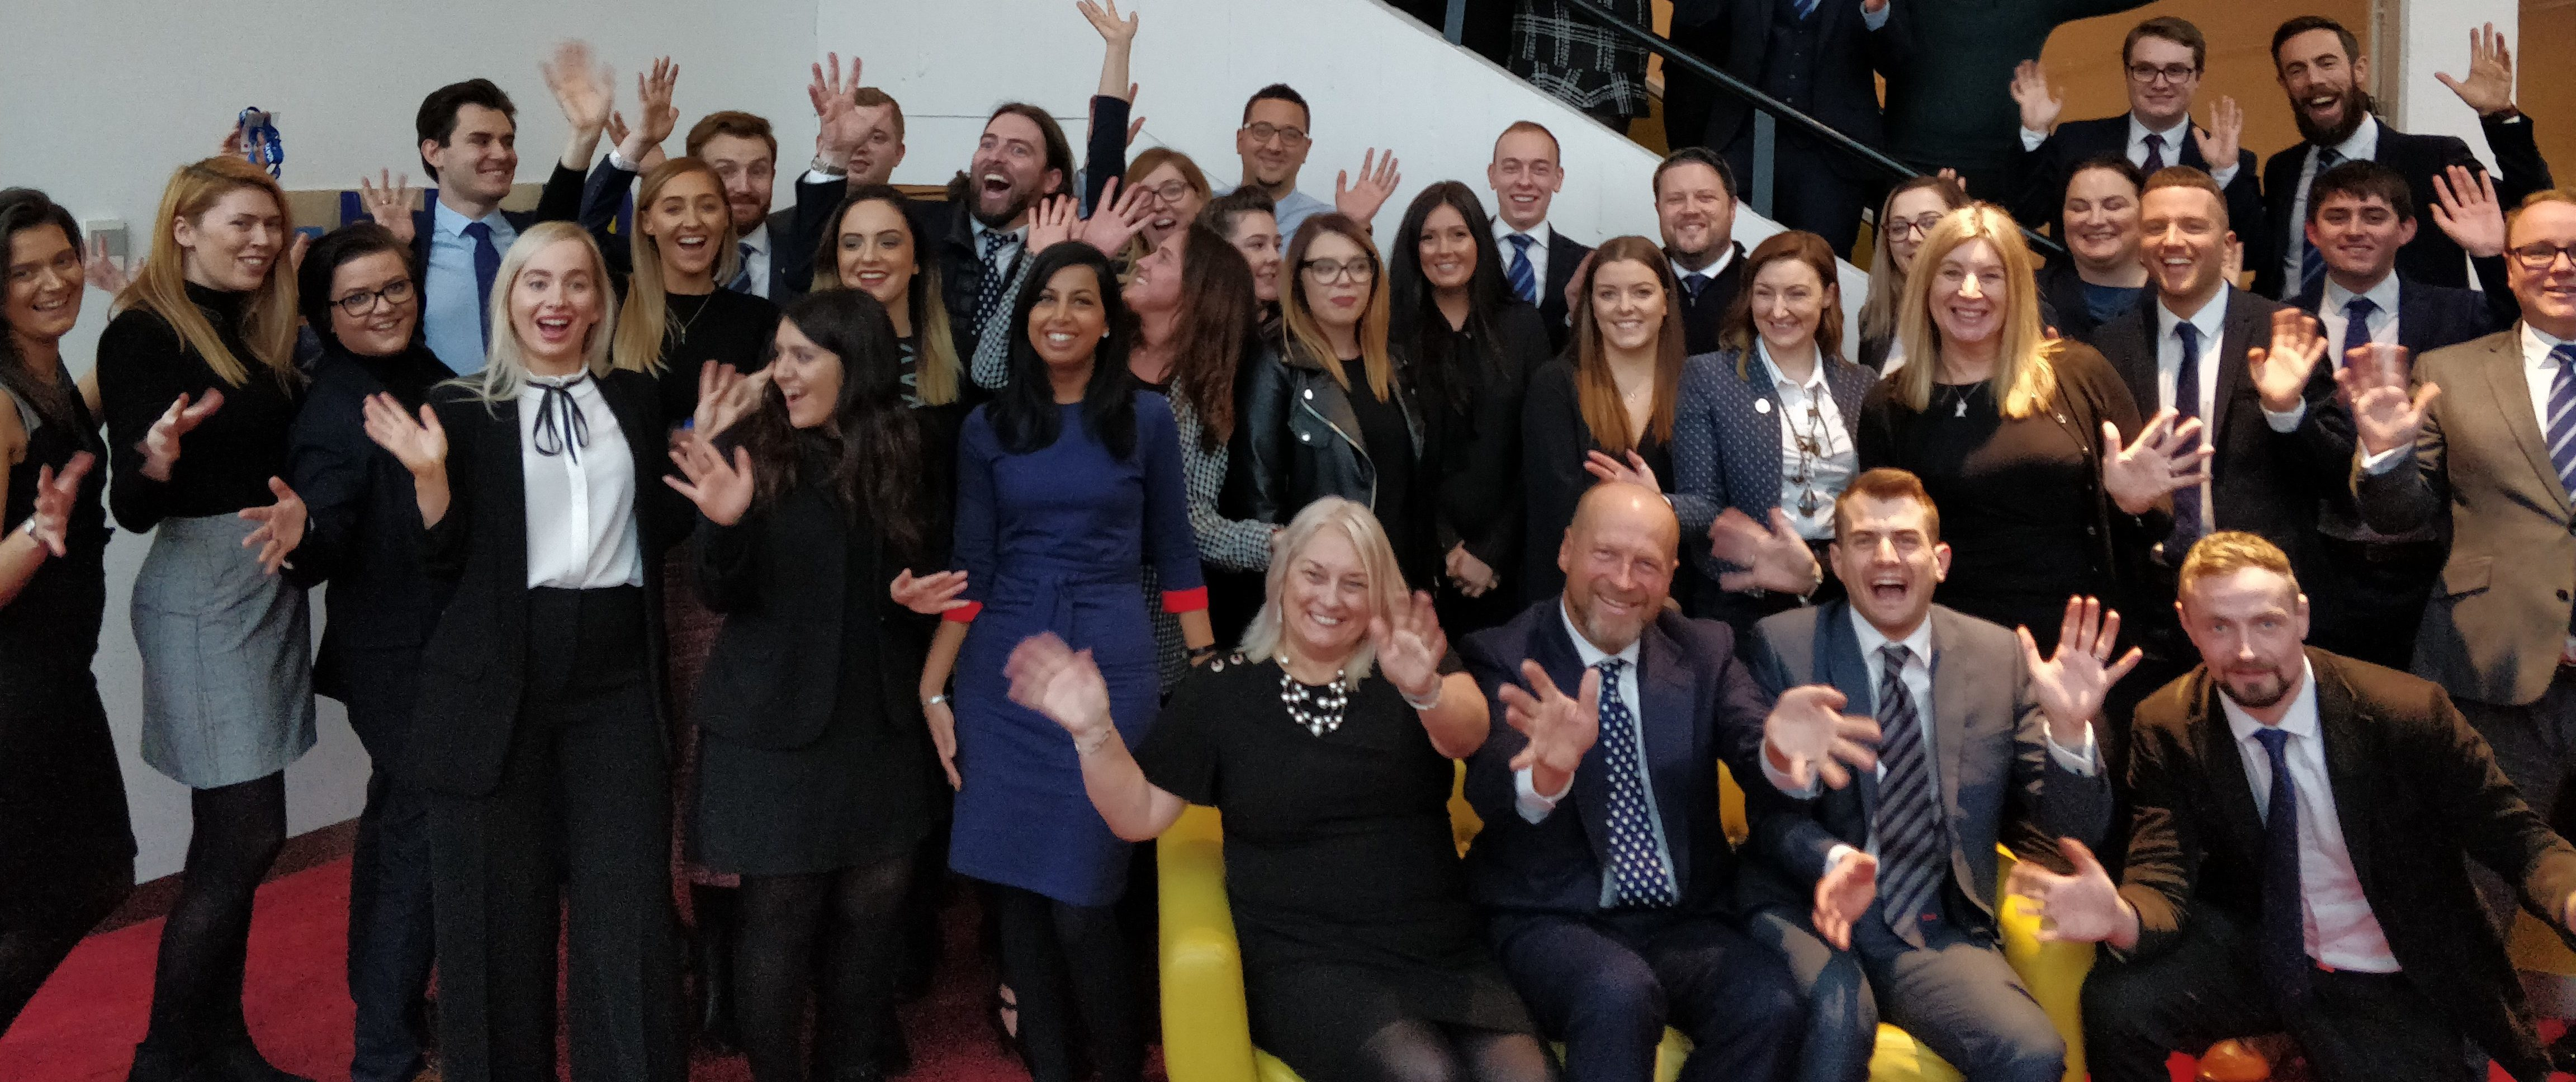 apprenticeship event - group photo with james reed and christine holland